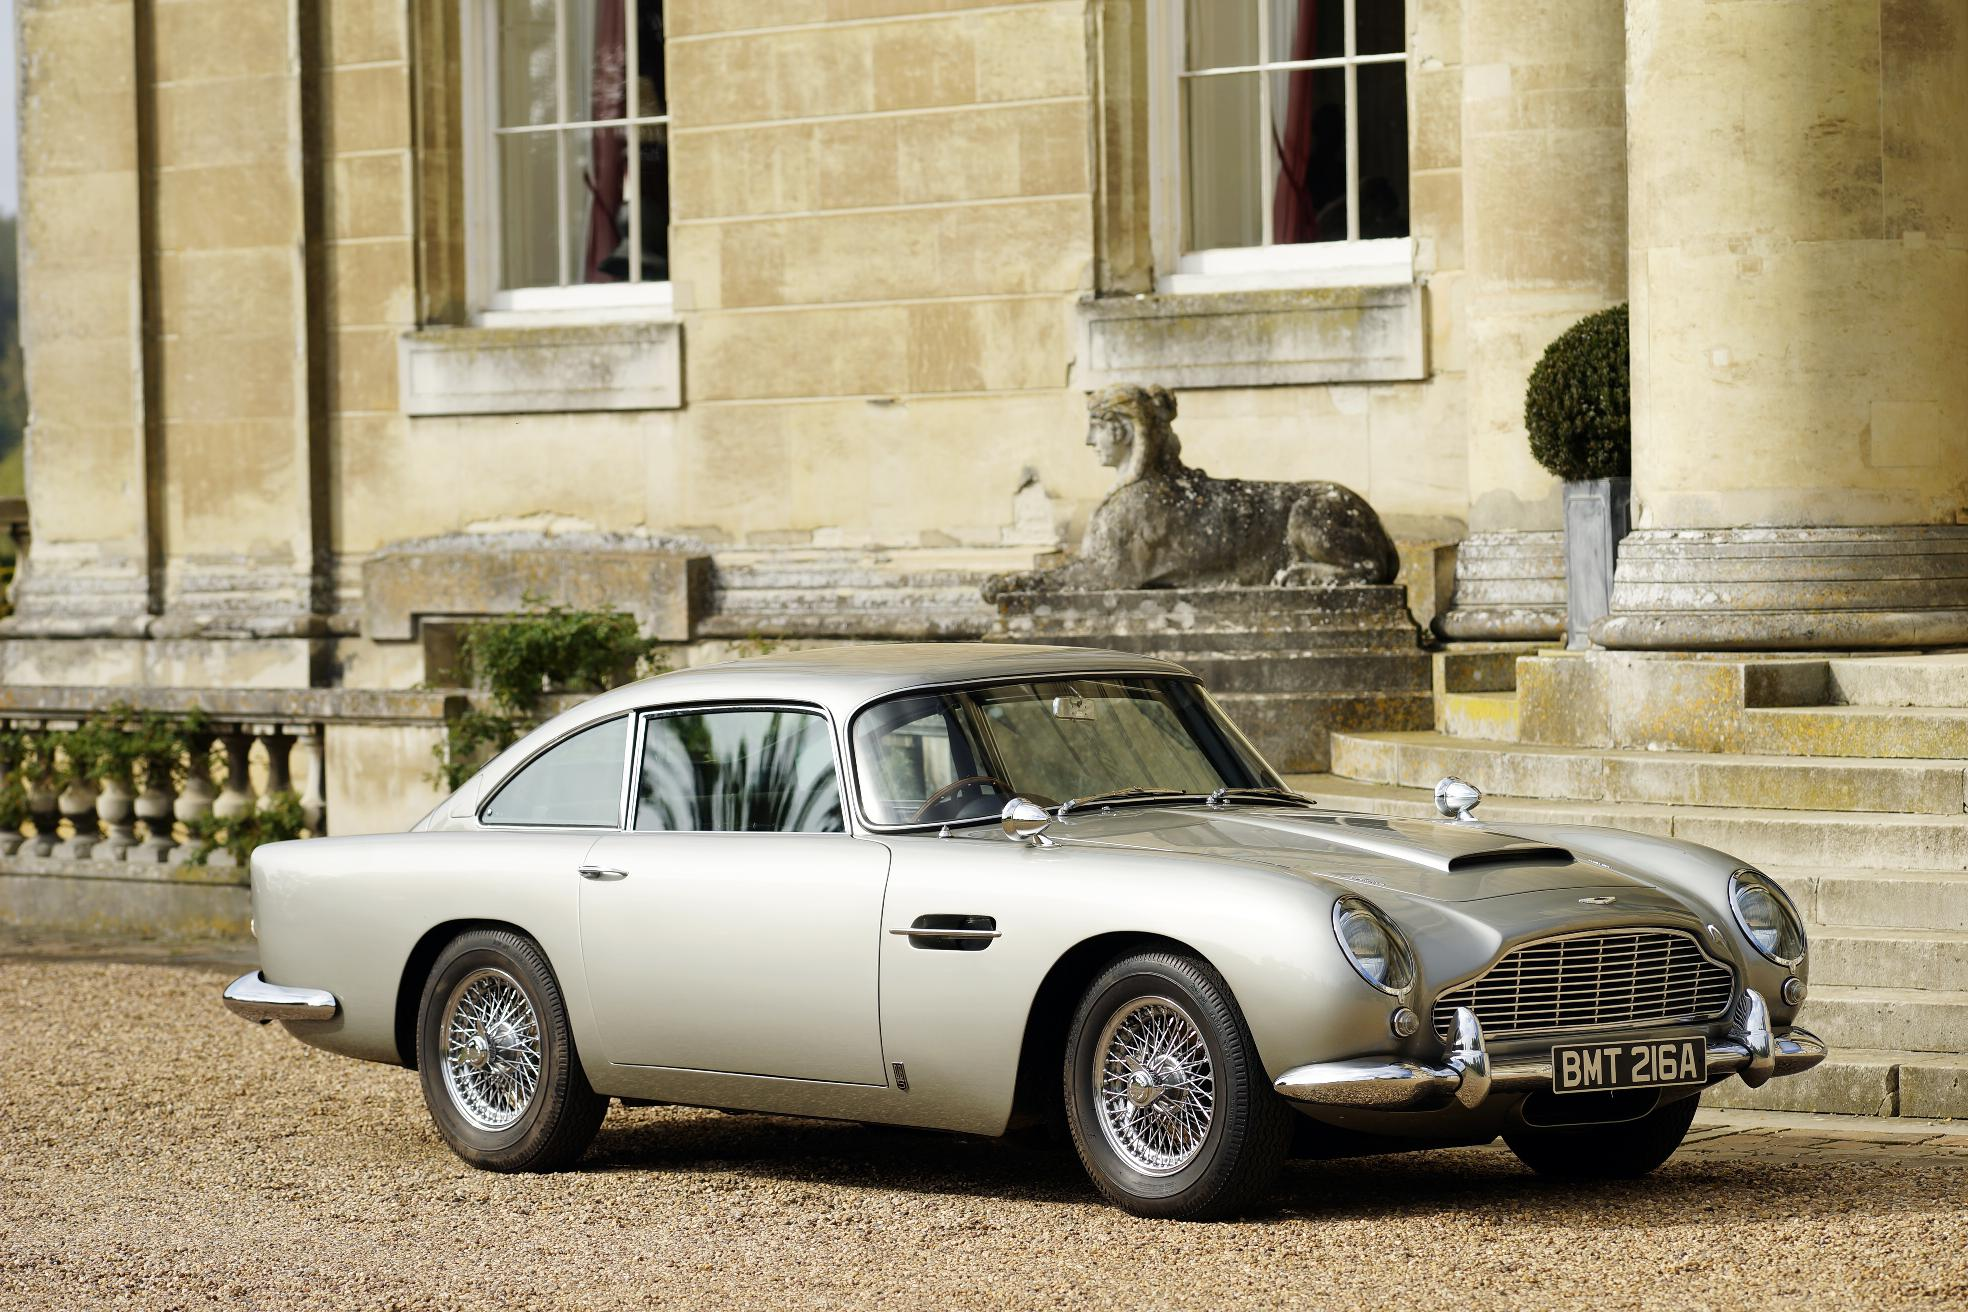 NewMotoring » What happened to the Skyfall DB5? – NewMotoring